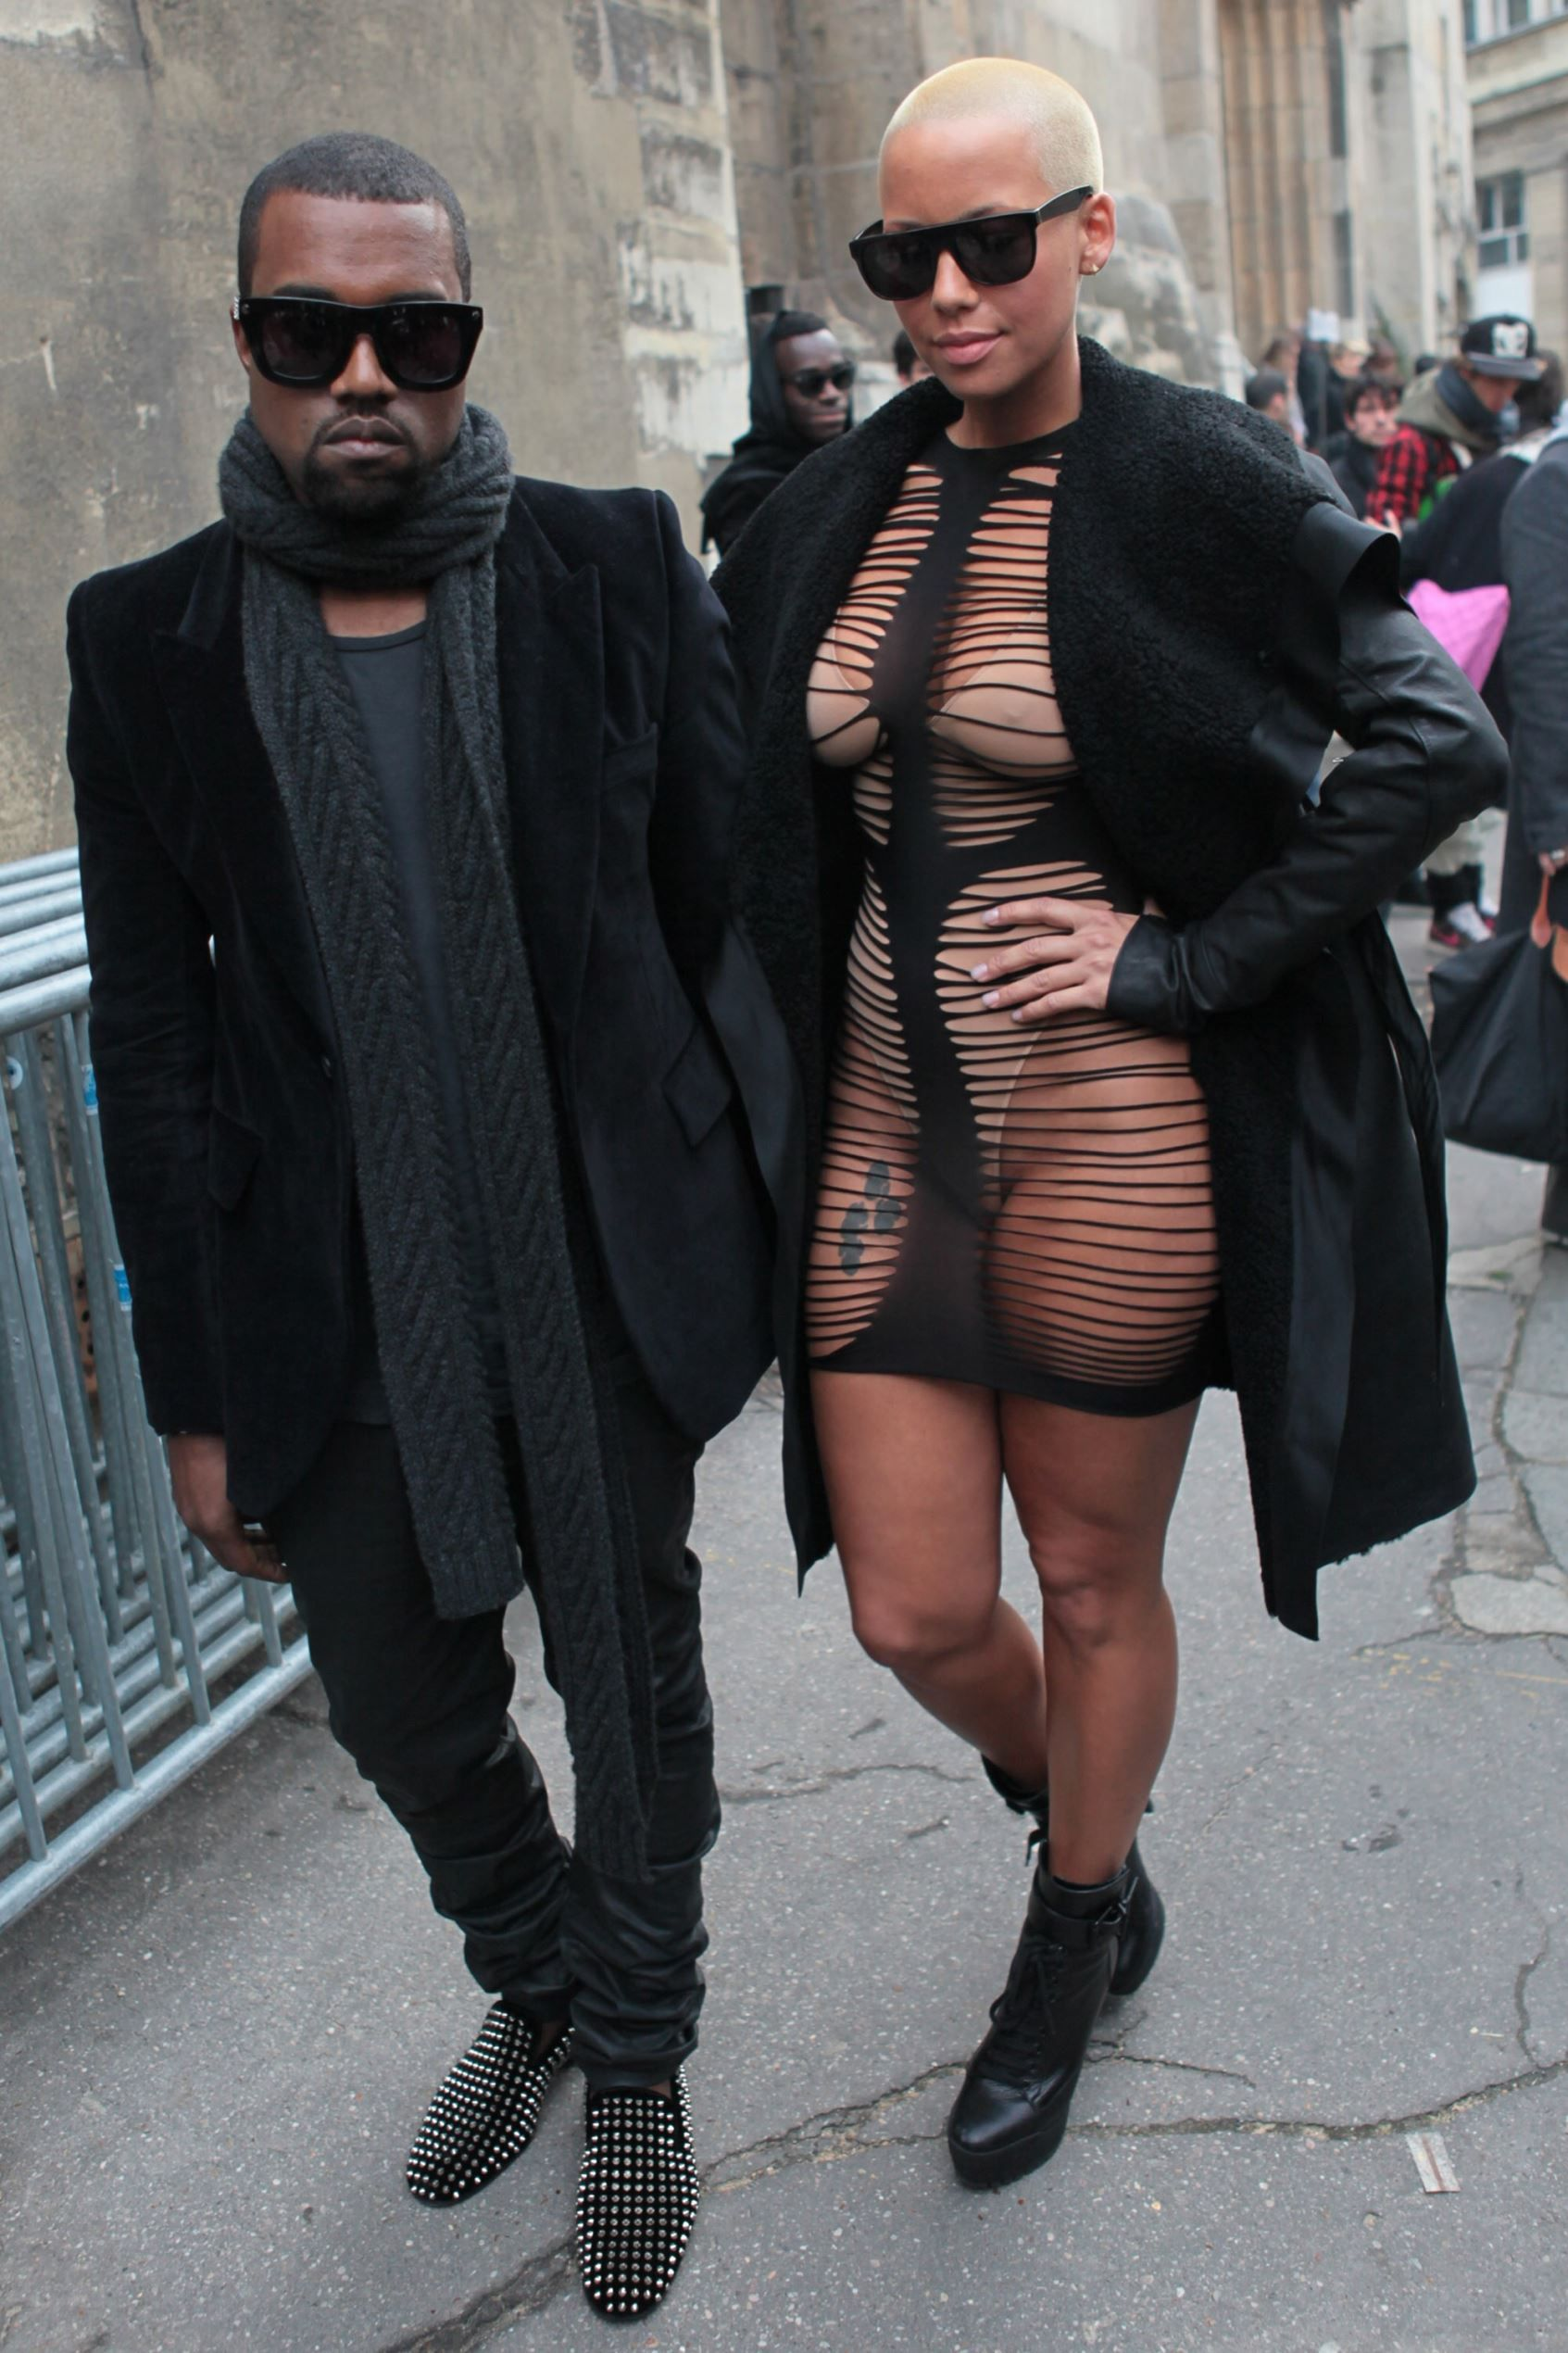 Amber Rose Fires Back At Kanye West - Antonio de Moraes Barros Filho/WireImage